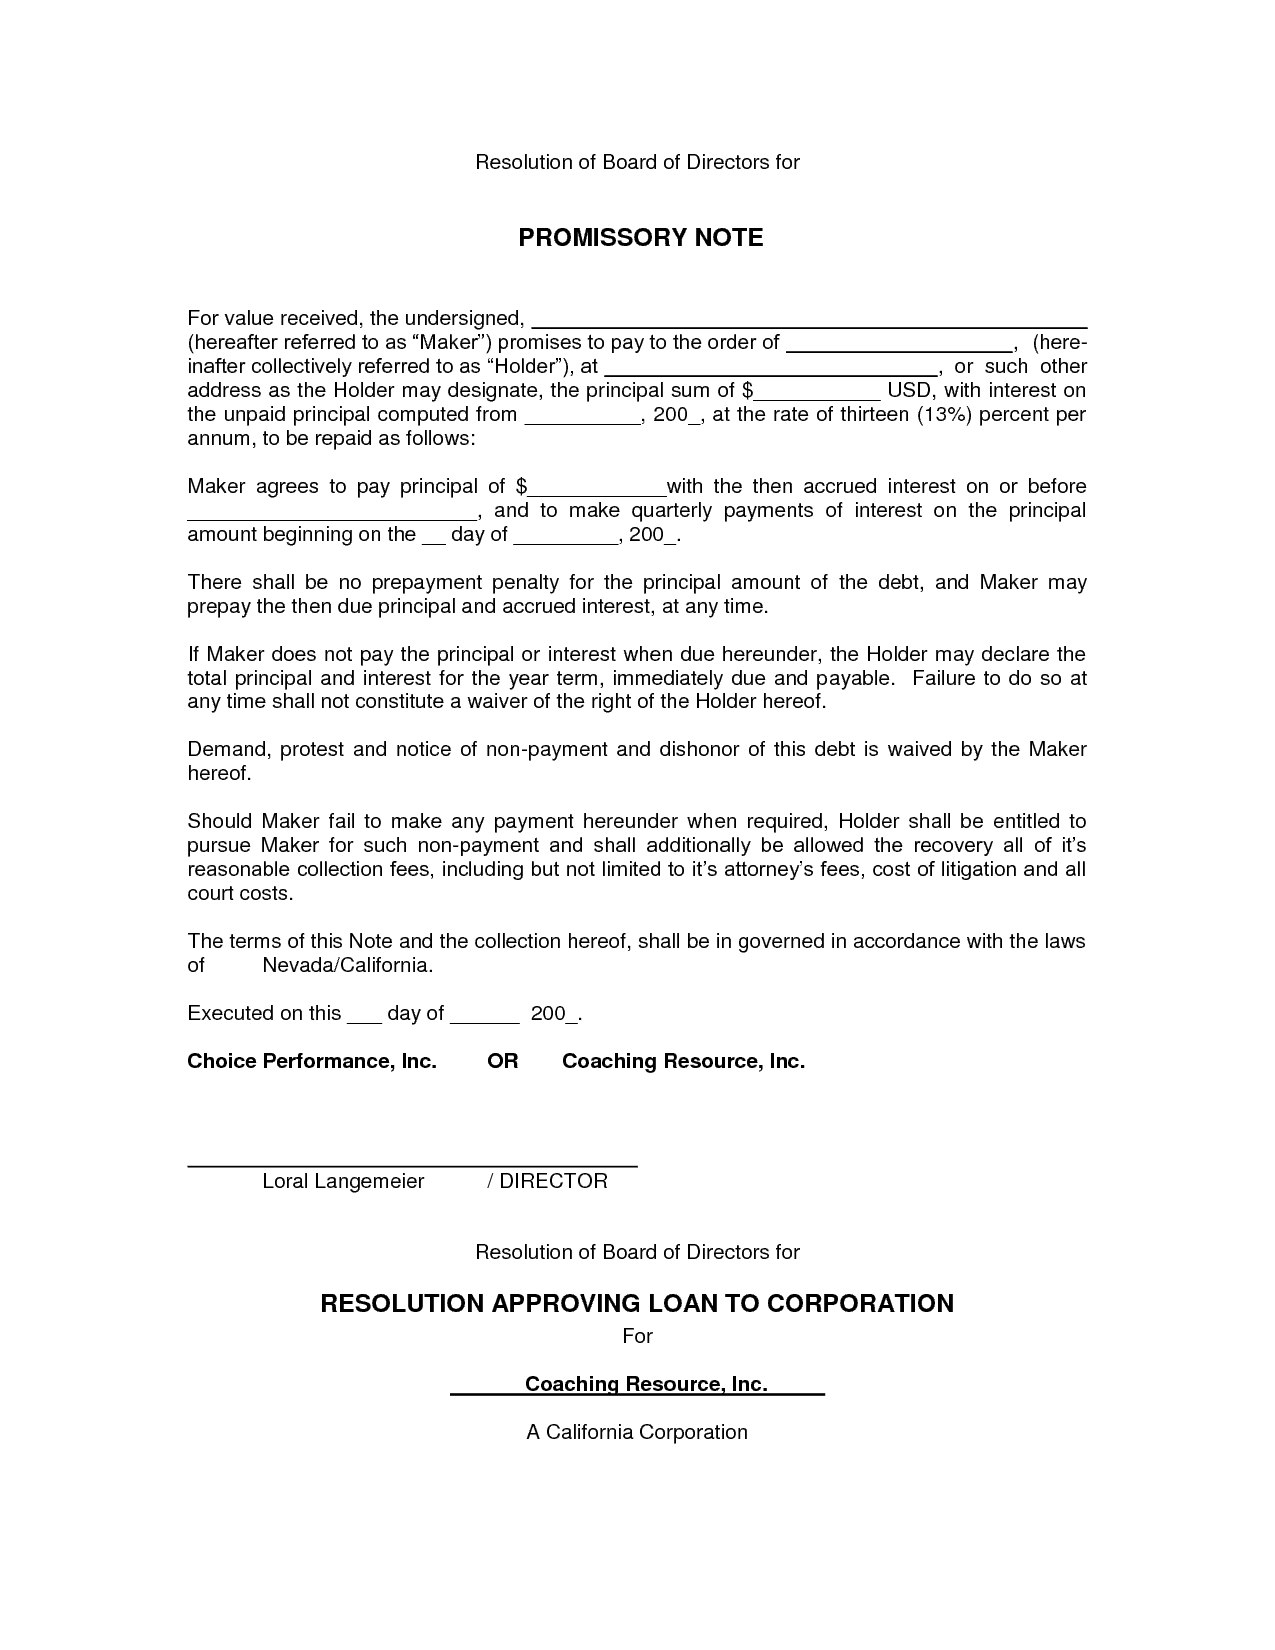 Promisory Note Sample Promissory Note Template 10 Download Free – Promissory Note Free Download